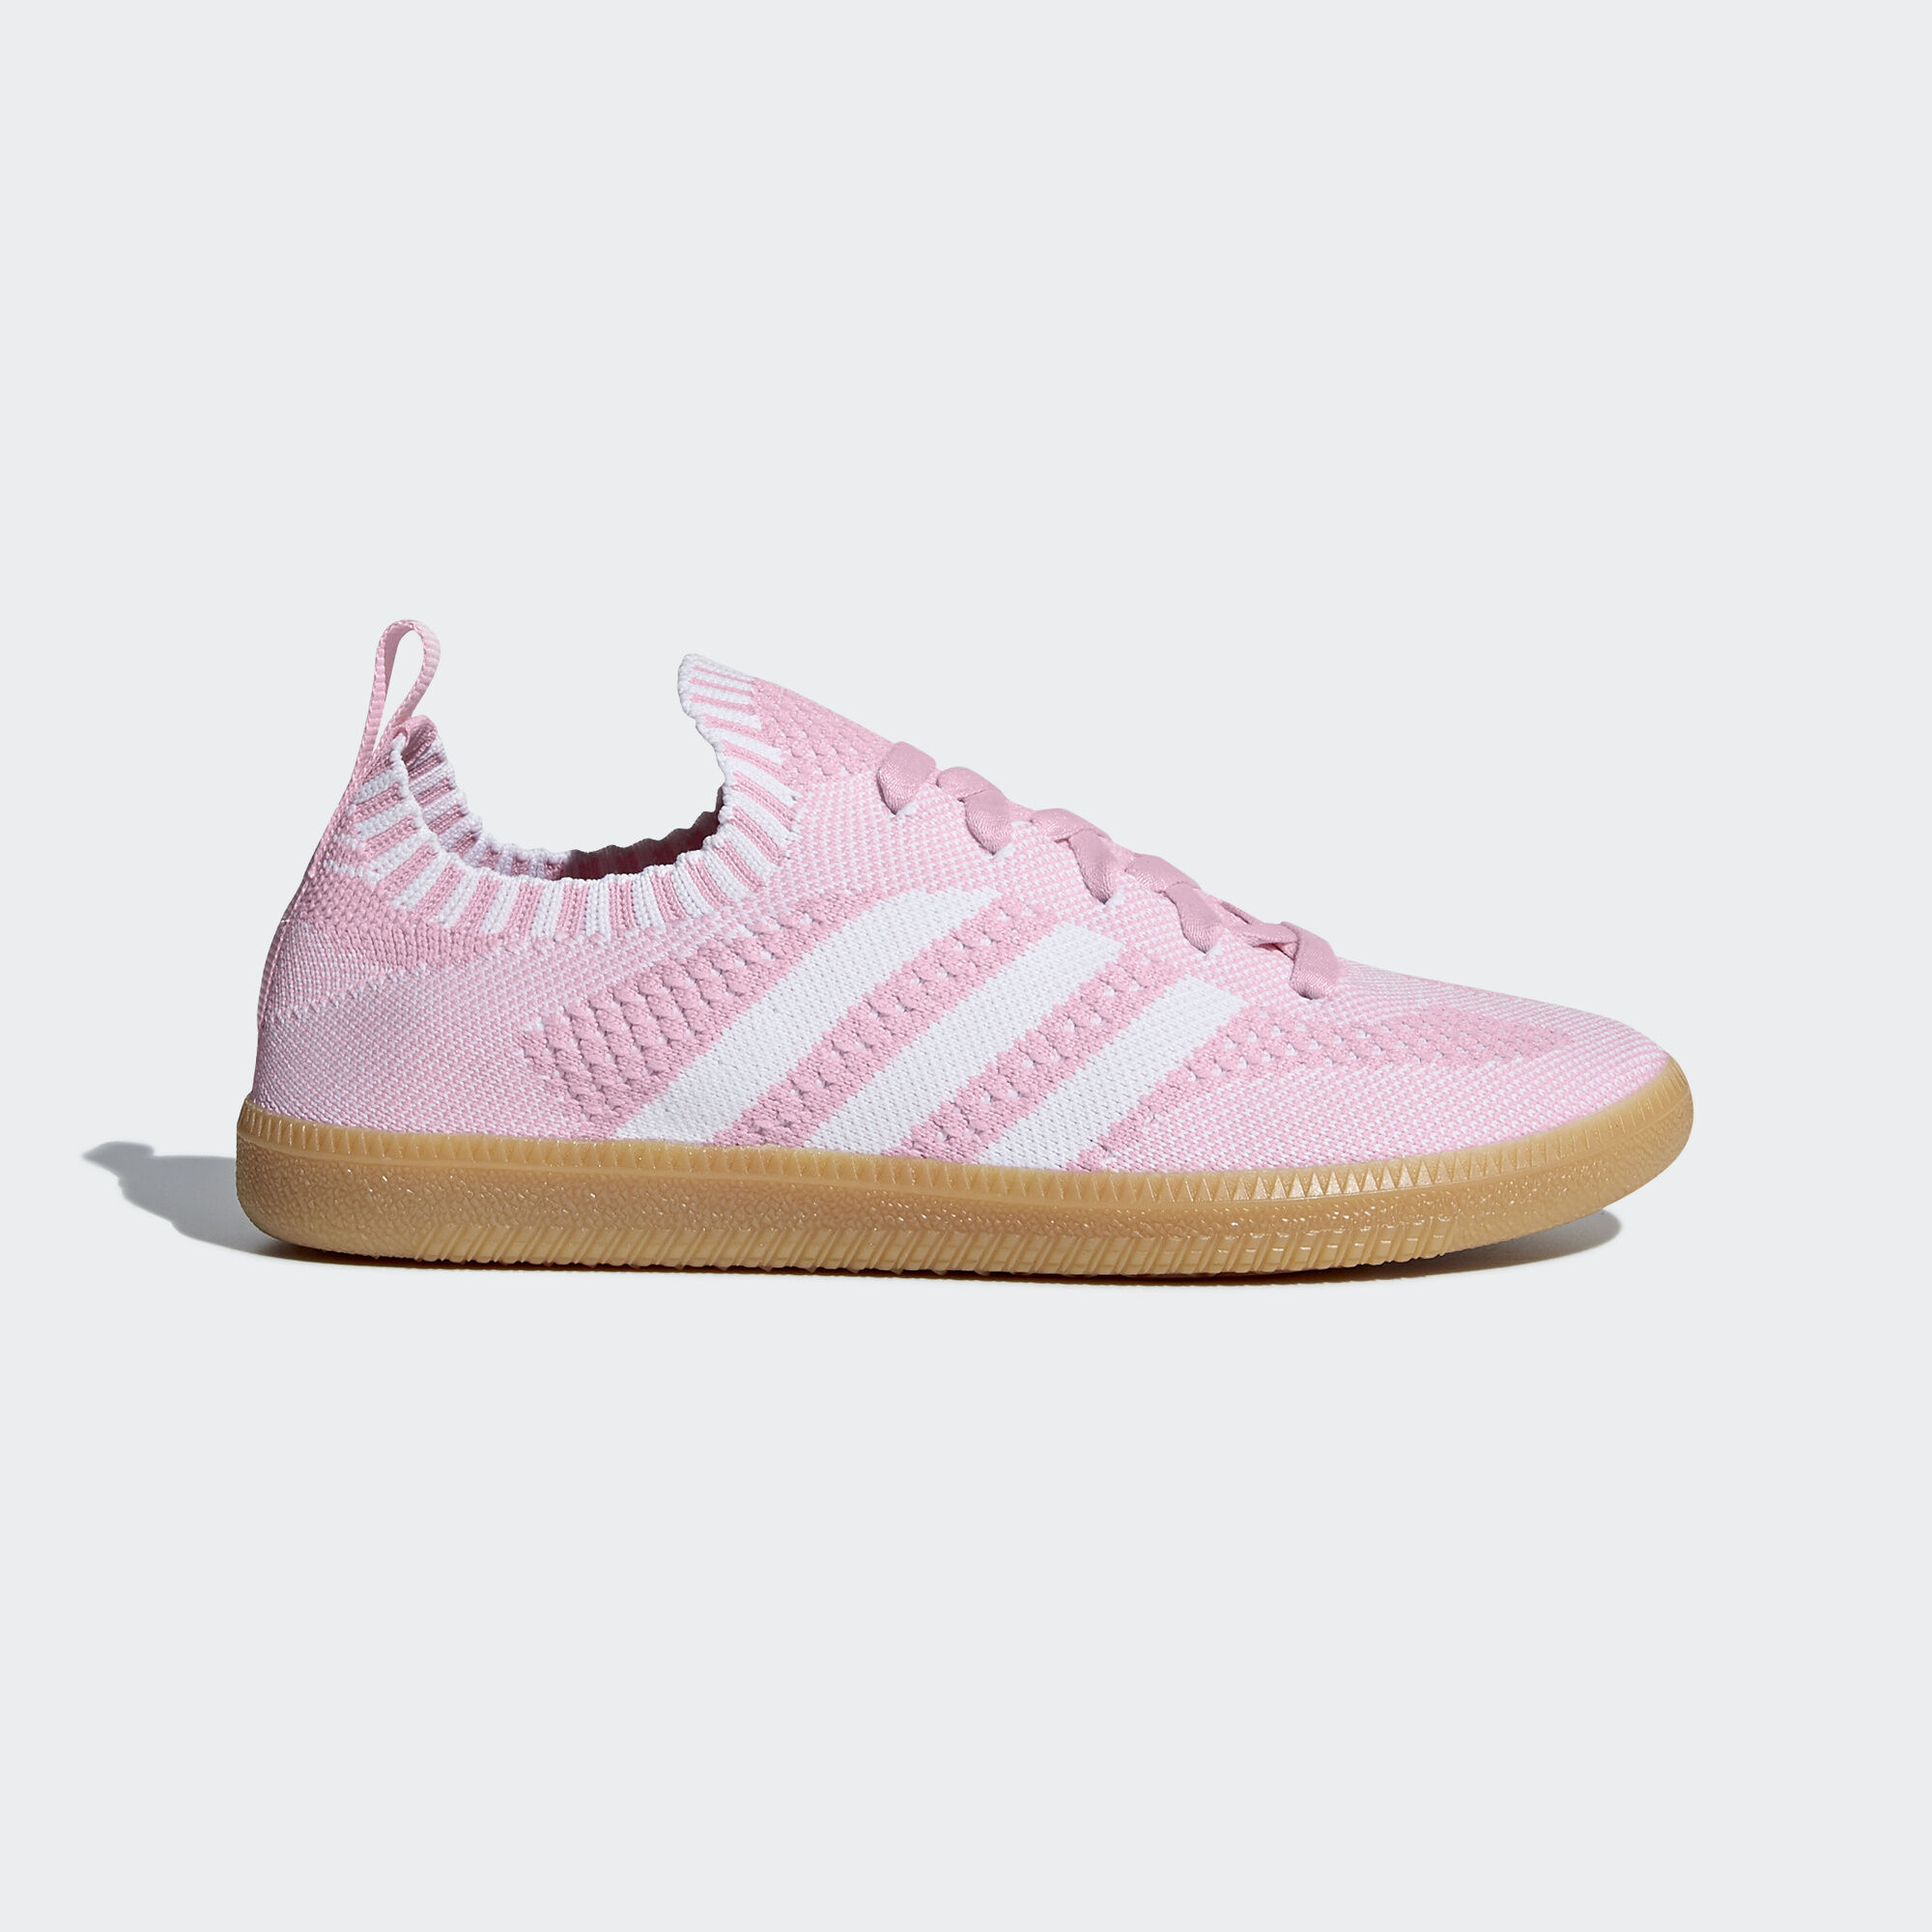 58e39174b271 aliexpress adidas samba white gum 4c835 5cd88